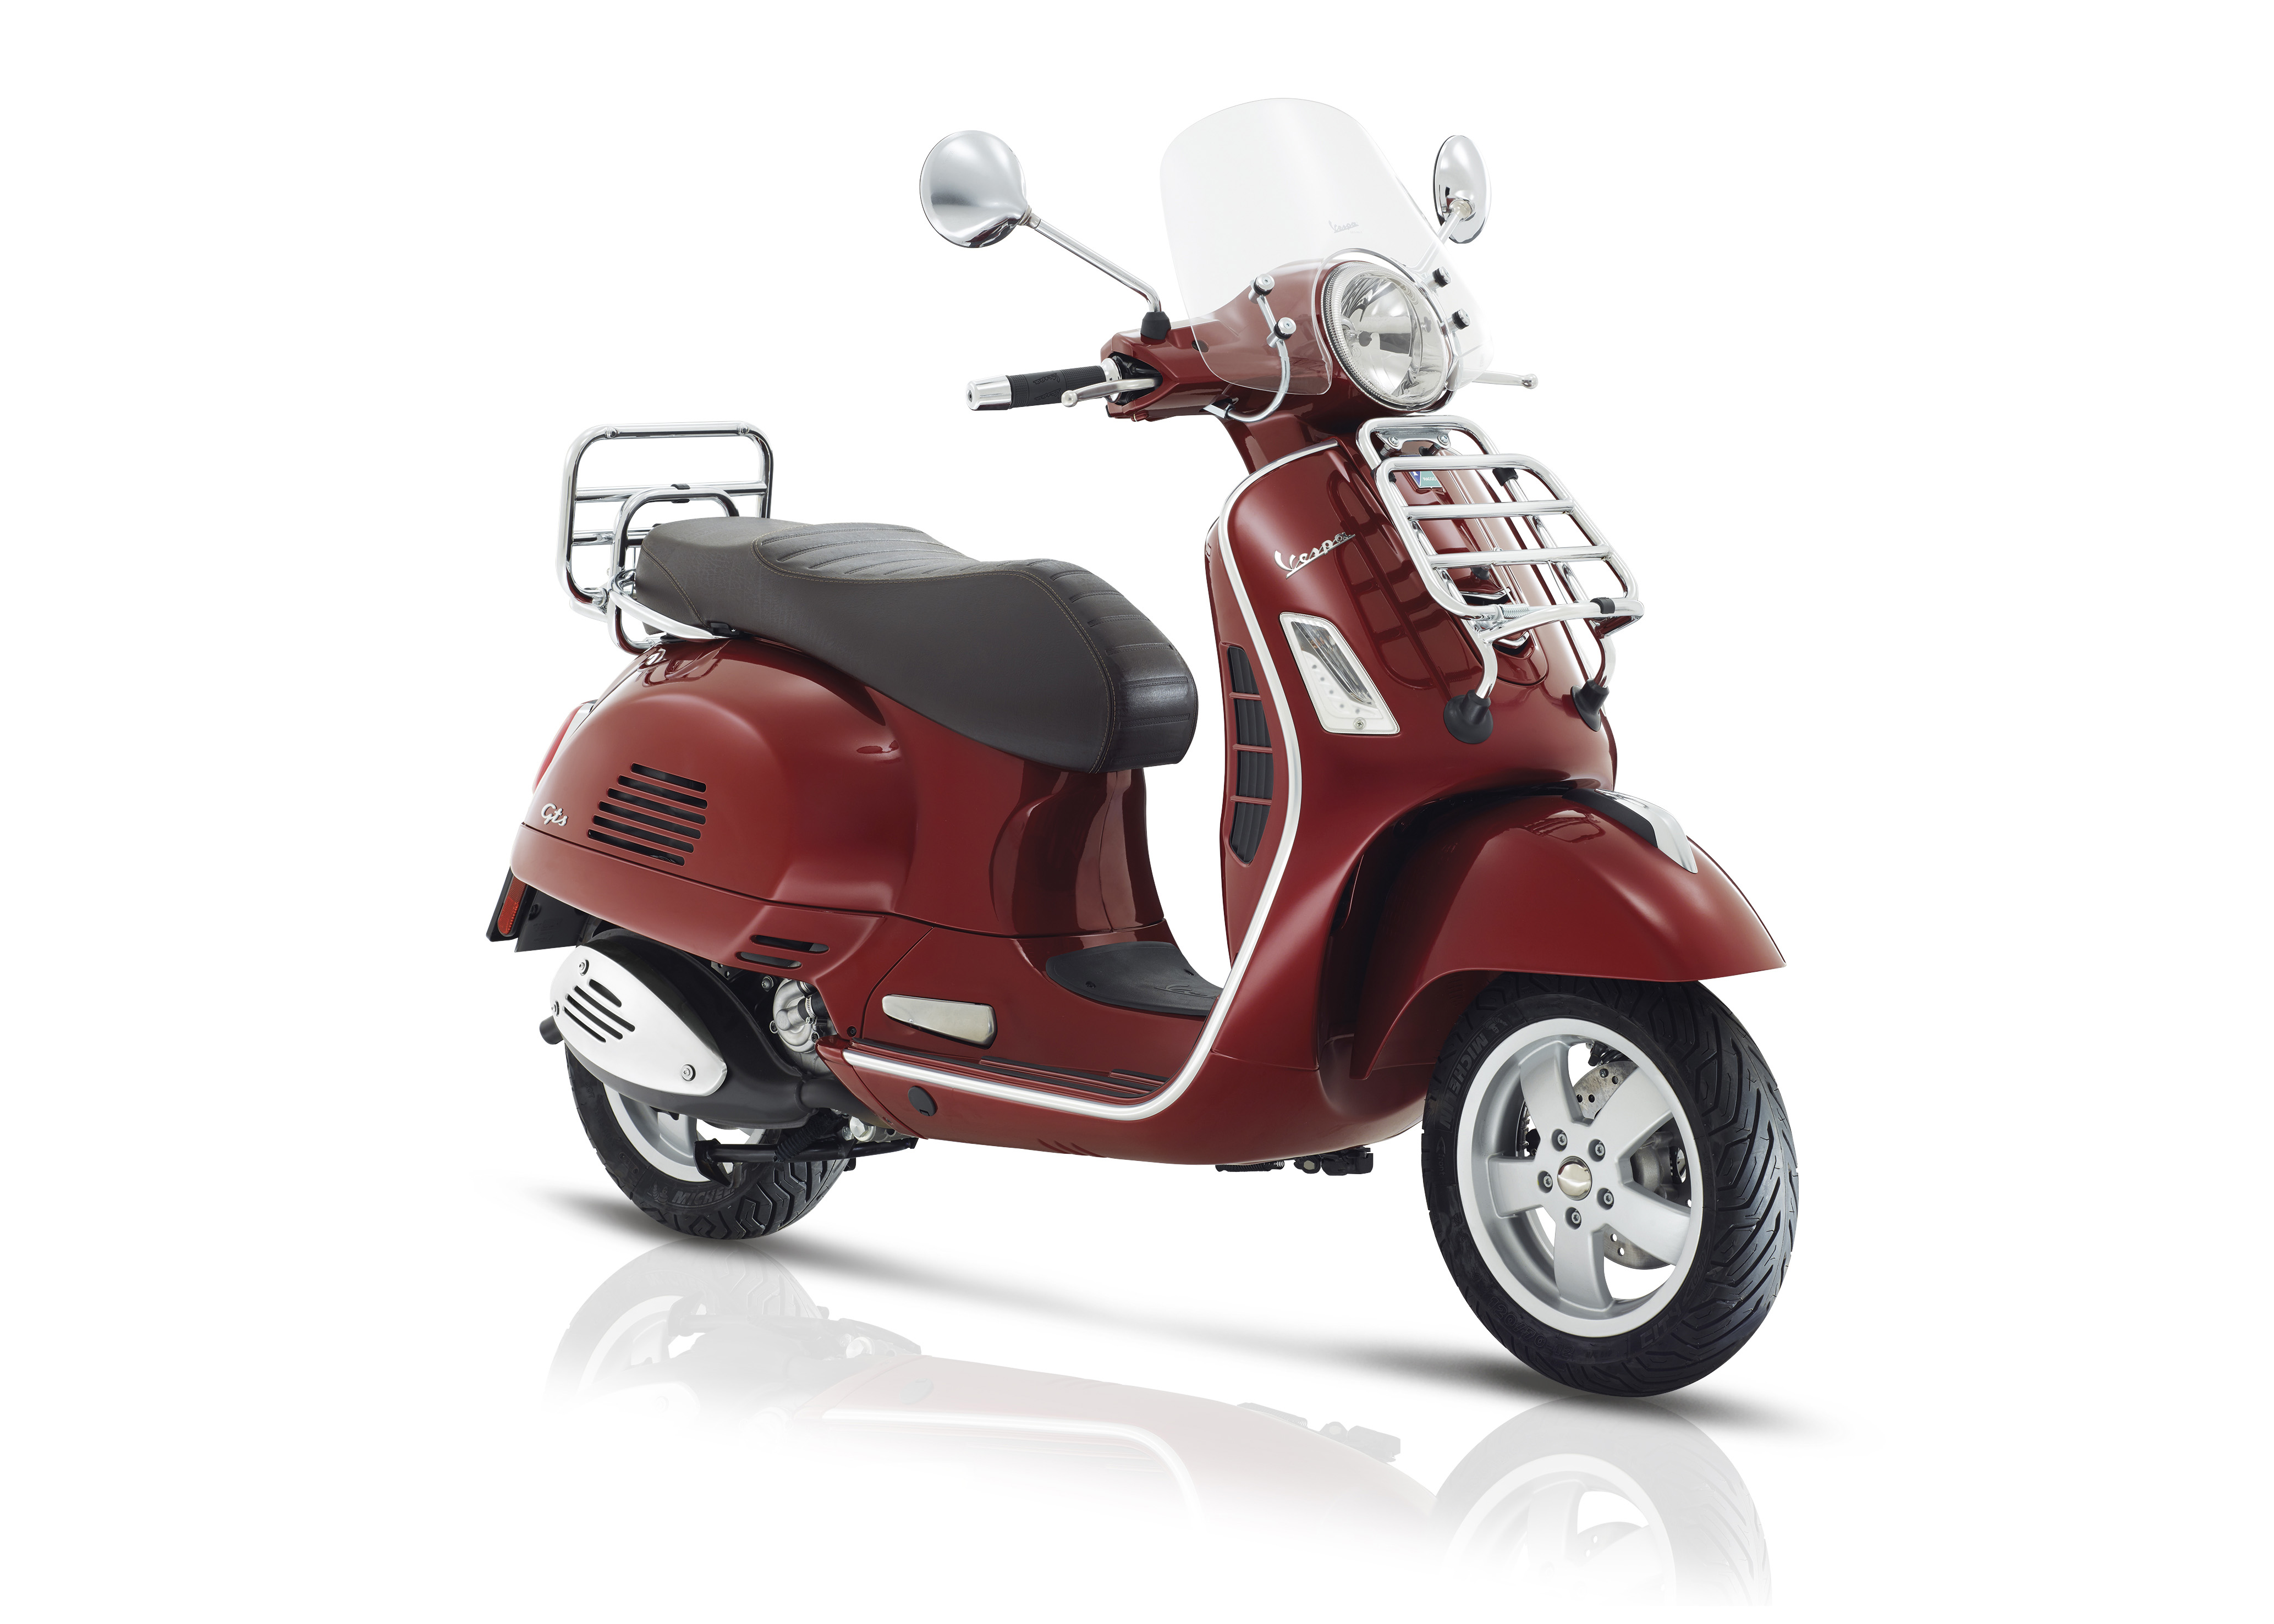 new 2017 vespa gts 300 touring scooters in sherman oaks ca. Black Bedroom Furniture Sets. Home Design Ideas